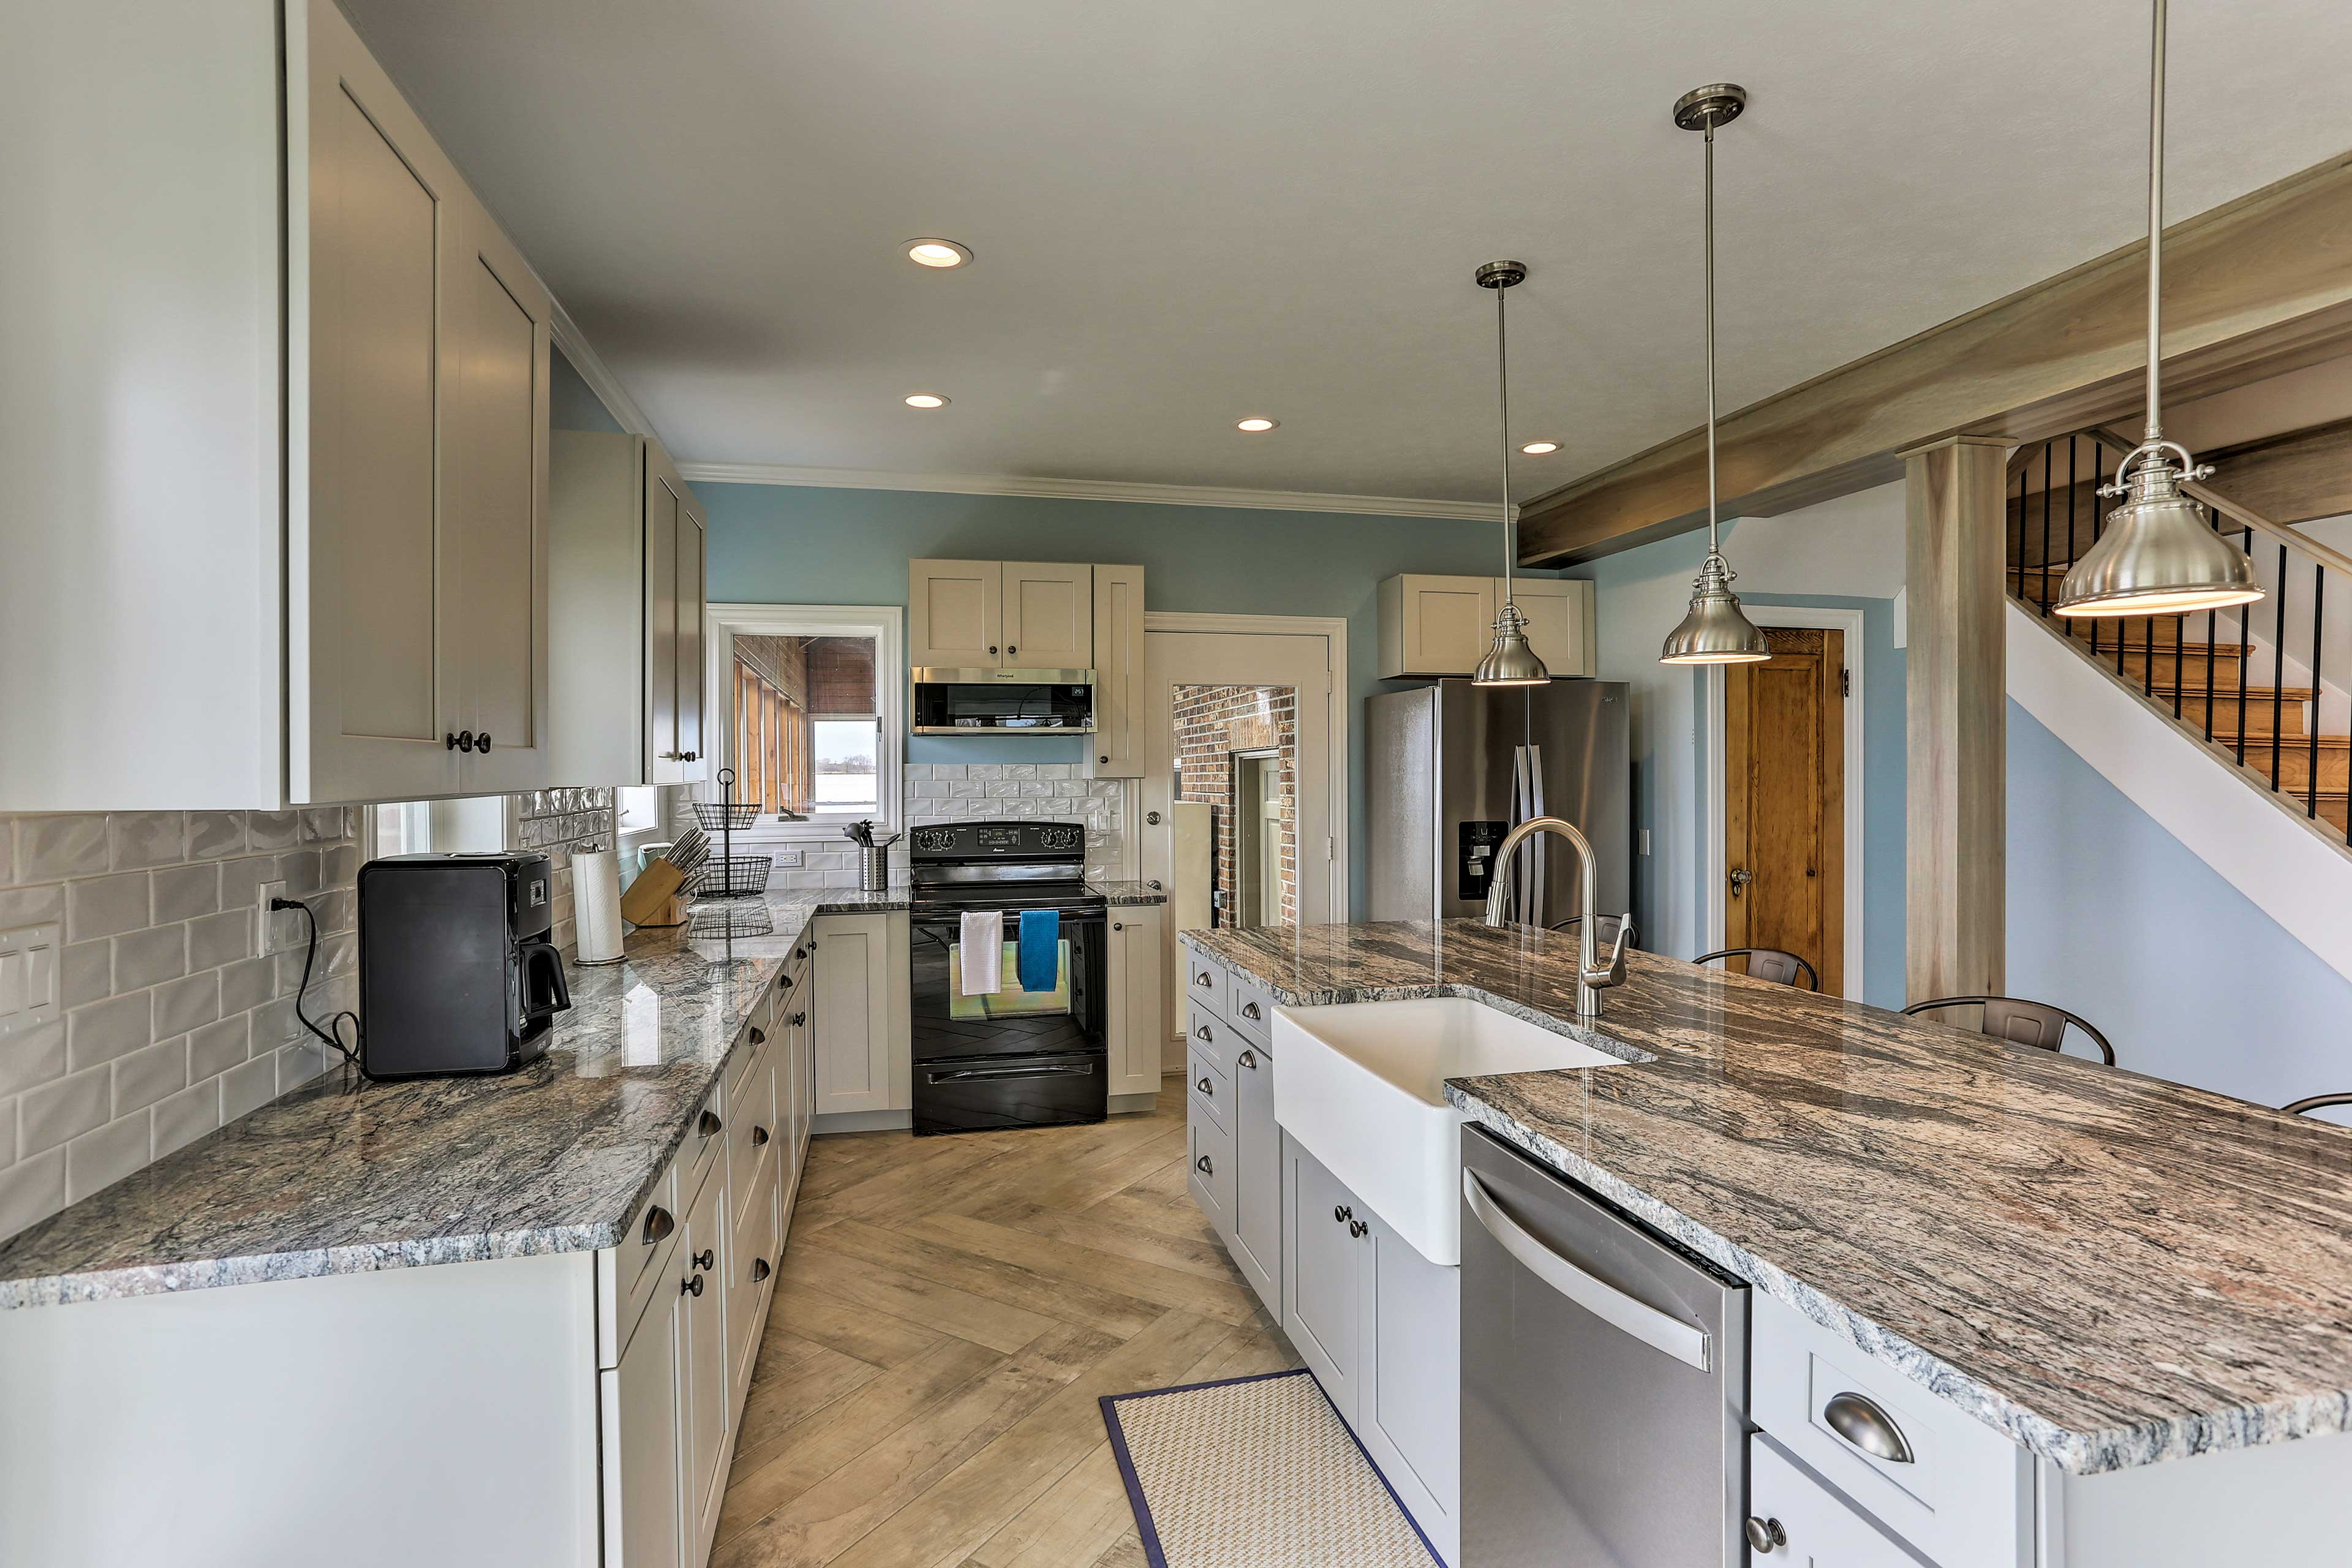 The kitchen comes fully equipped for your cooking endeavors.